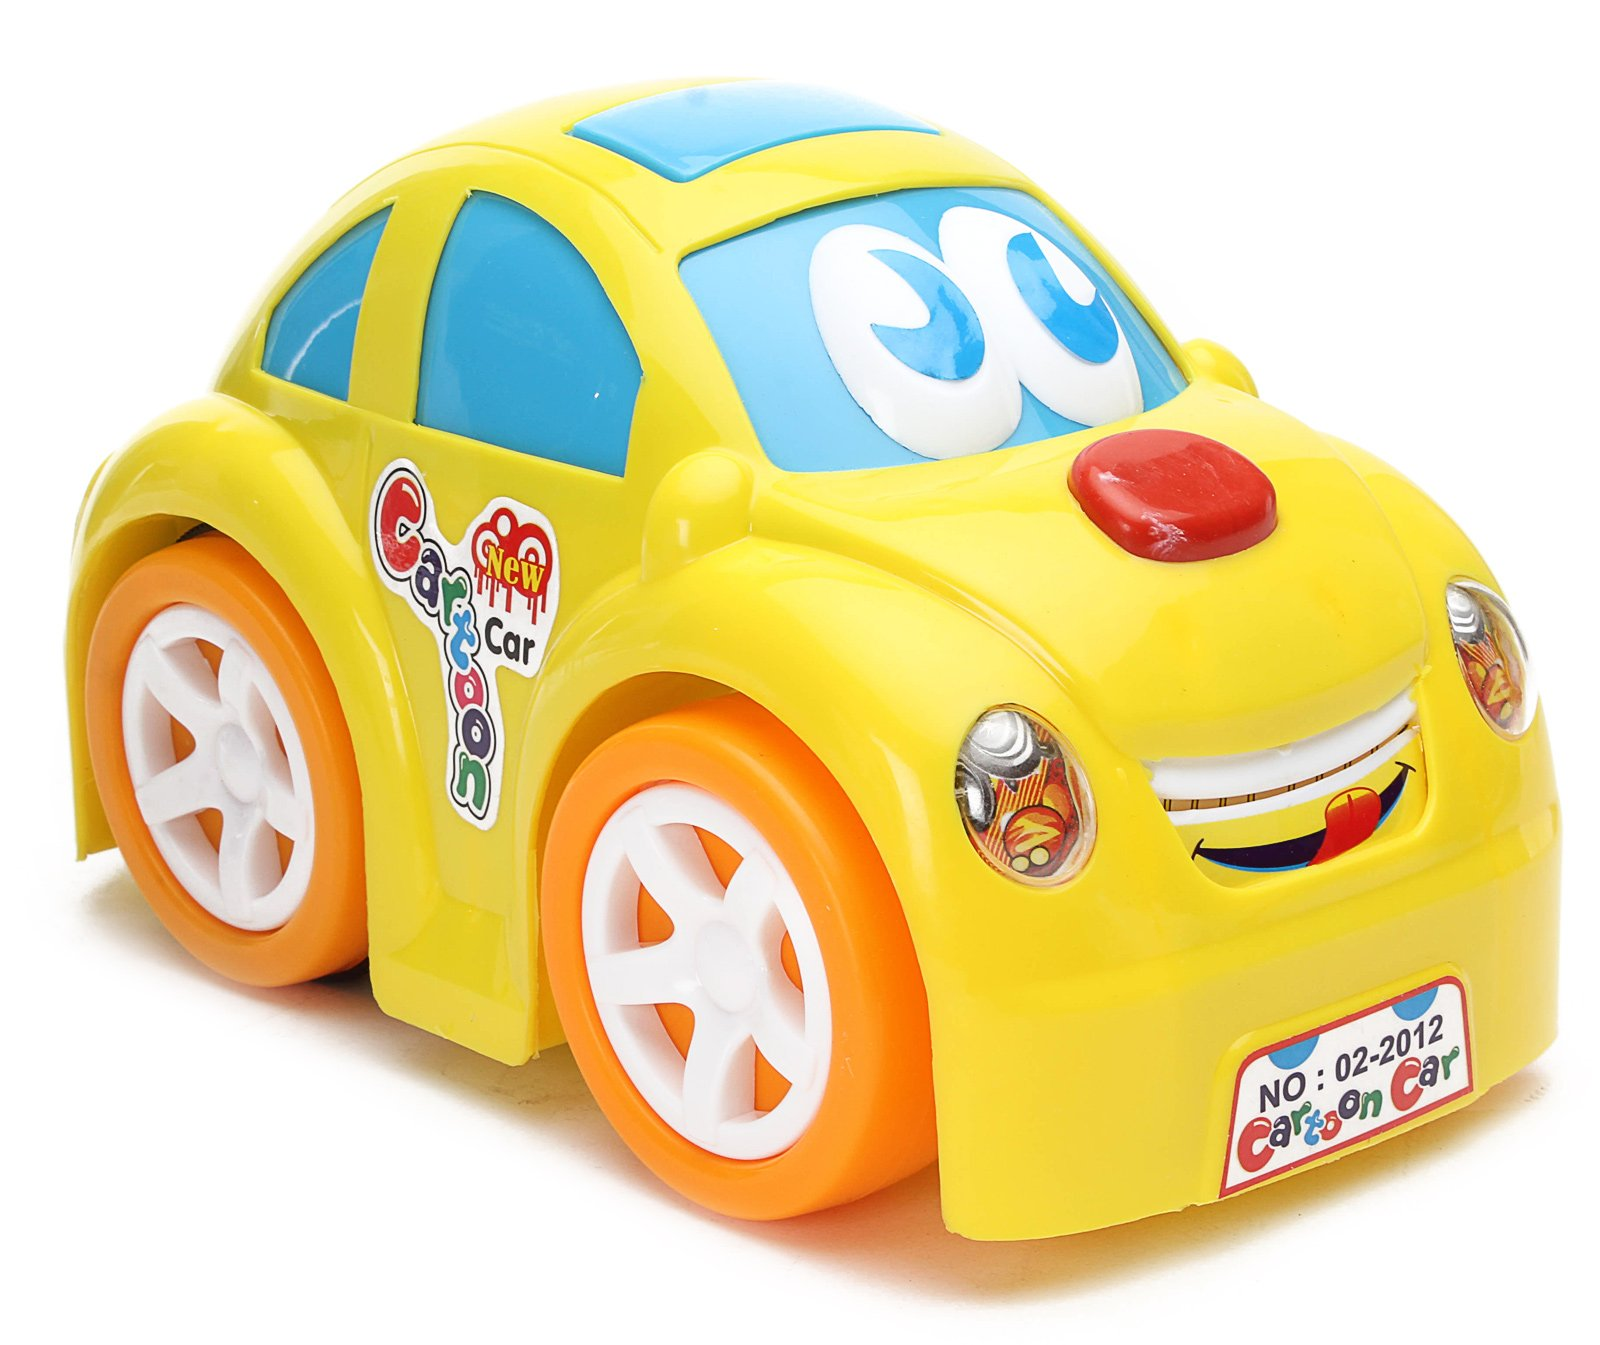 Luvely cartoon car toy yellow for 12 24 months online india buy at